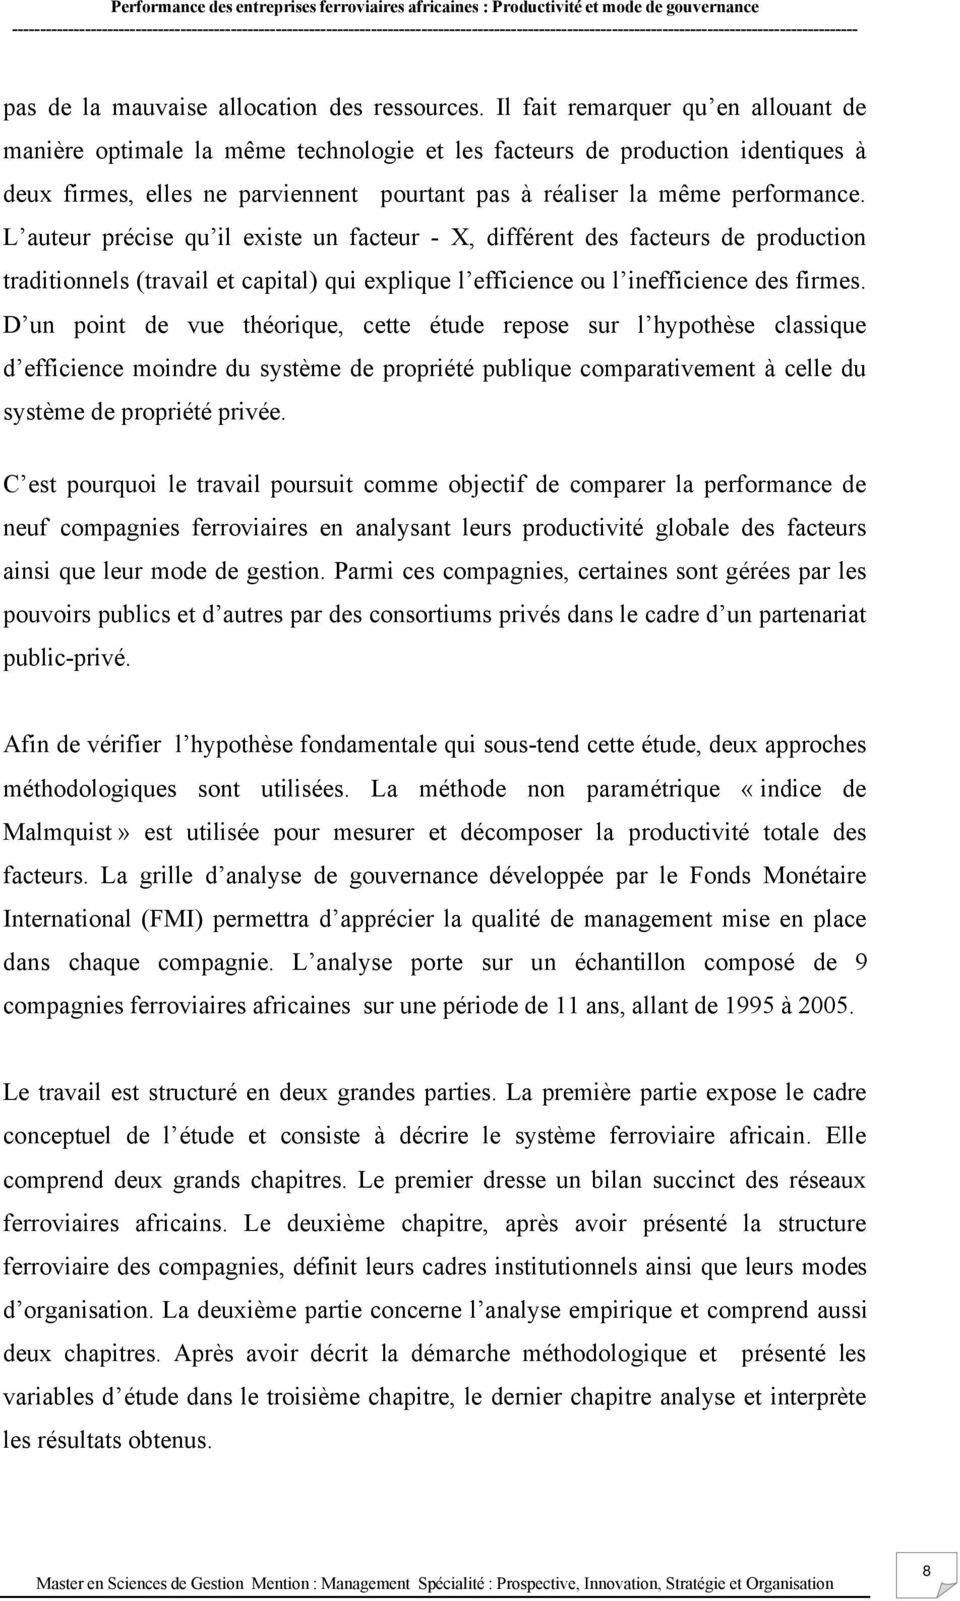 L auteur précise qu il existe un facteur - X, différent des facteurs de production traditionnels (travail et capital) qui explique l efficience ou l inefficience des firmes.